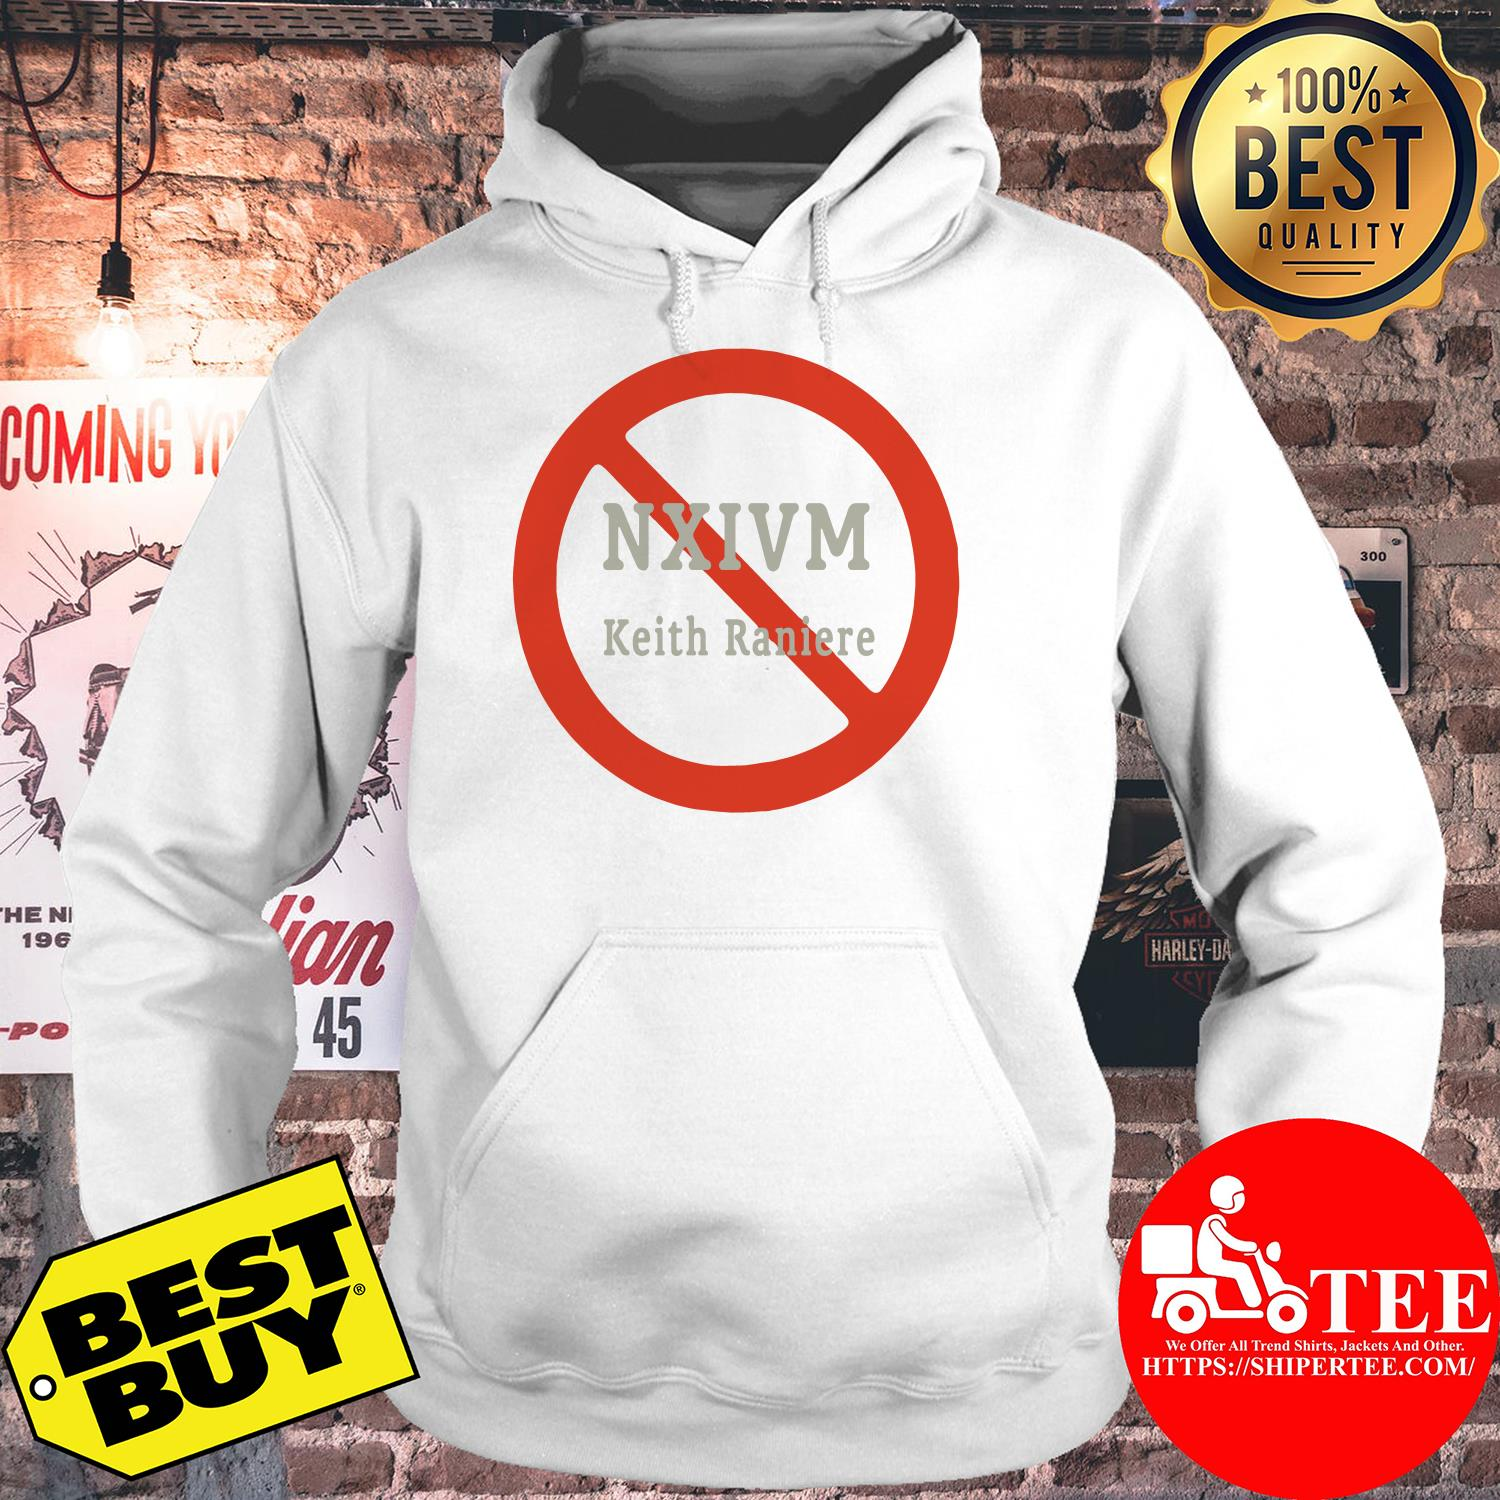 NXIVM Keith Raniere Golden Grey Graphic Novelty Tee hoodie